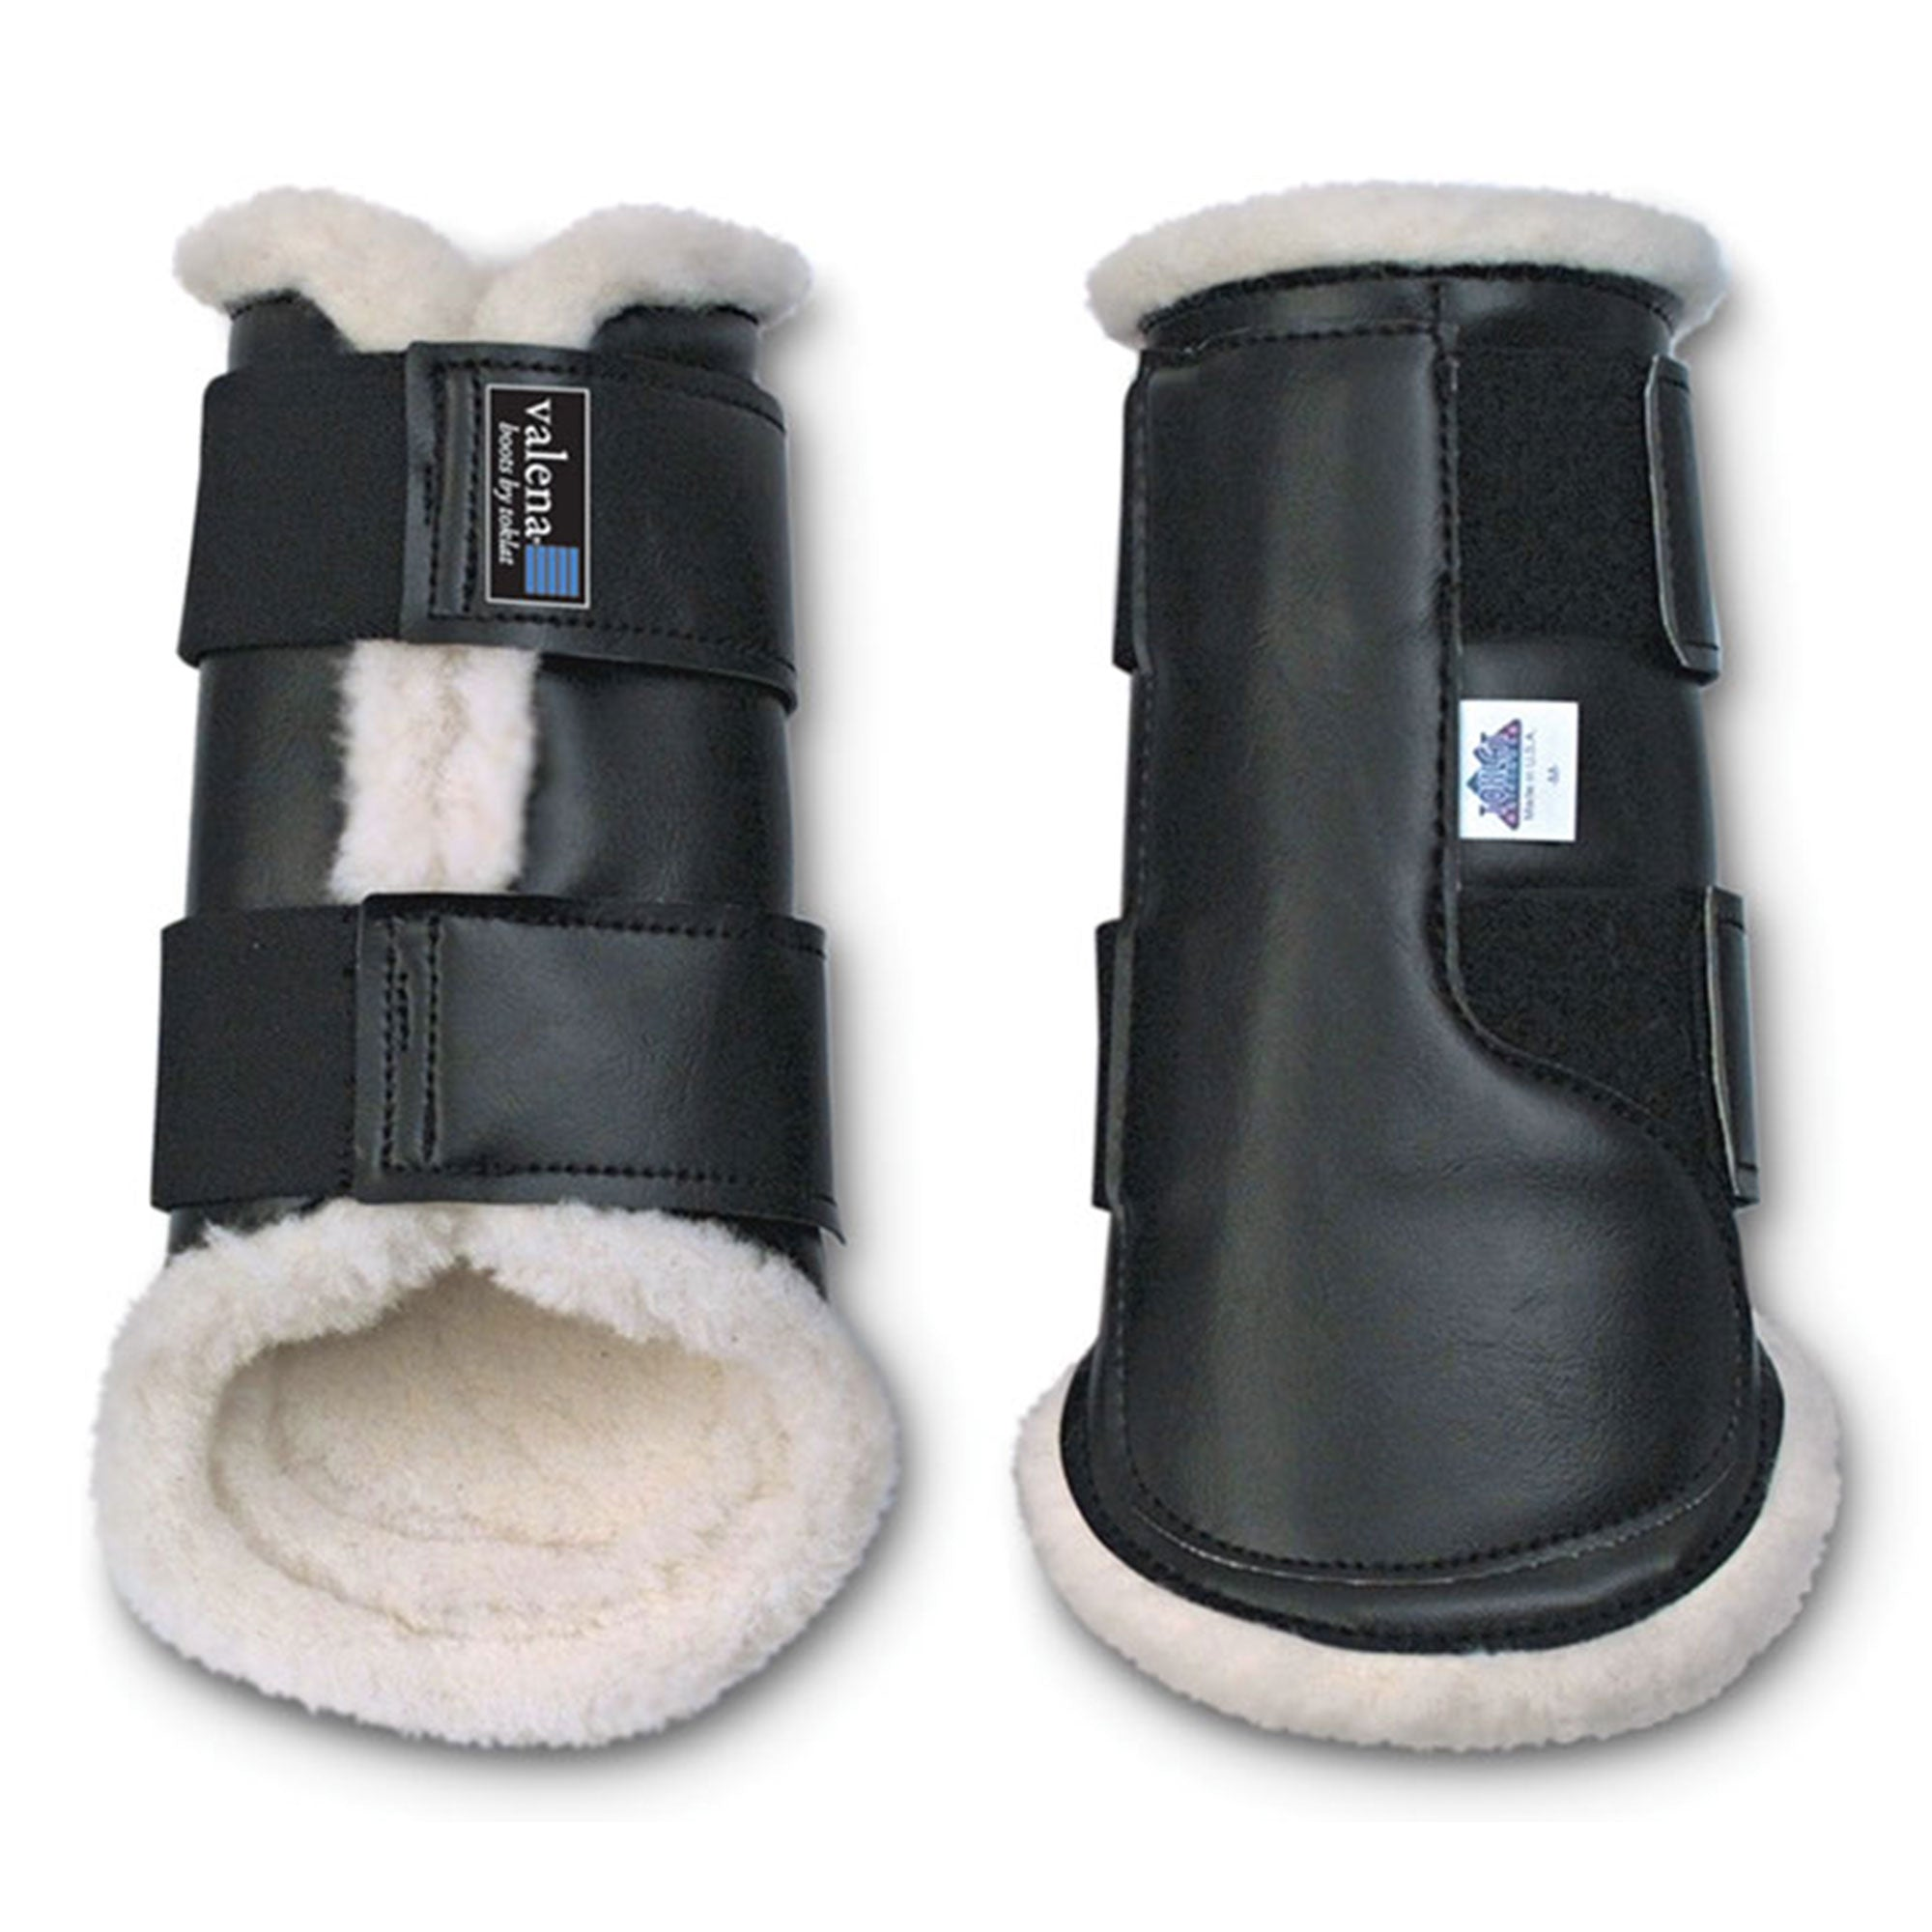 Valena Wool-Lined Protective Front Boots - North Shore Saddlery